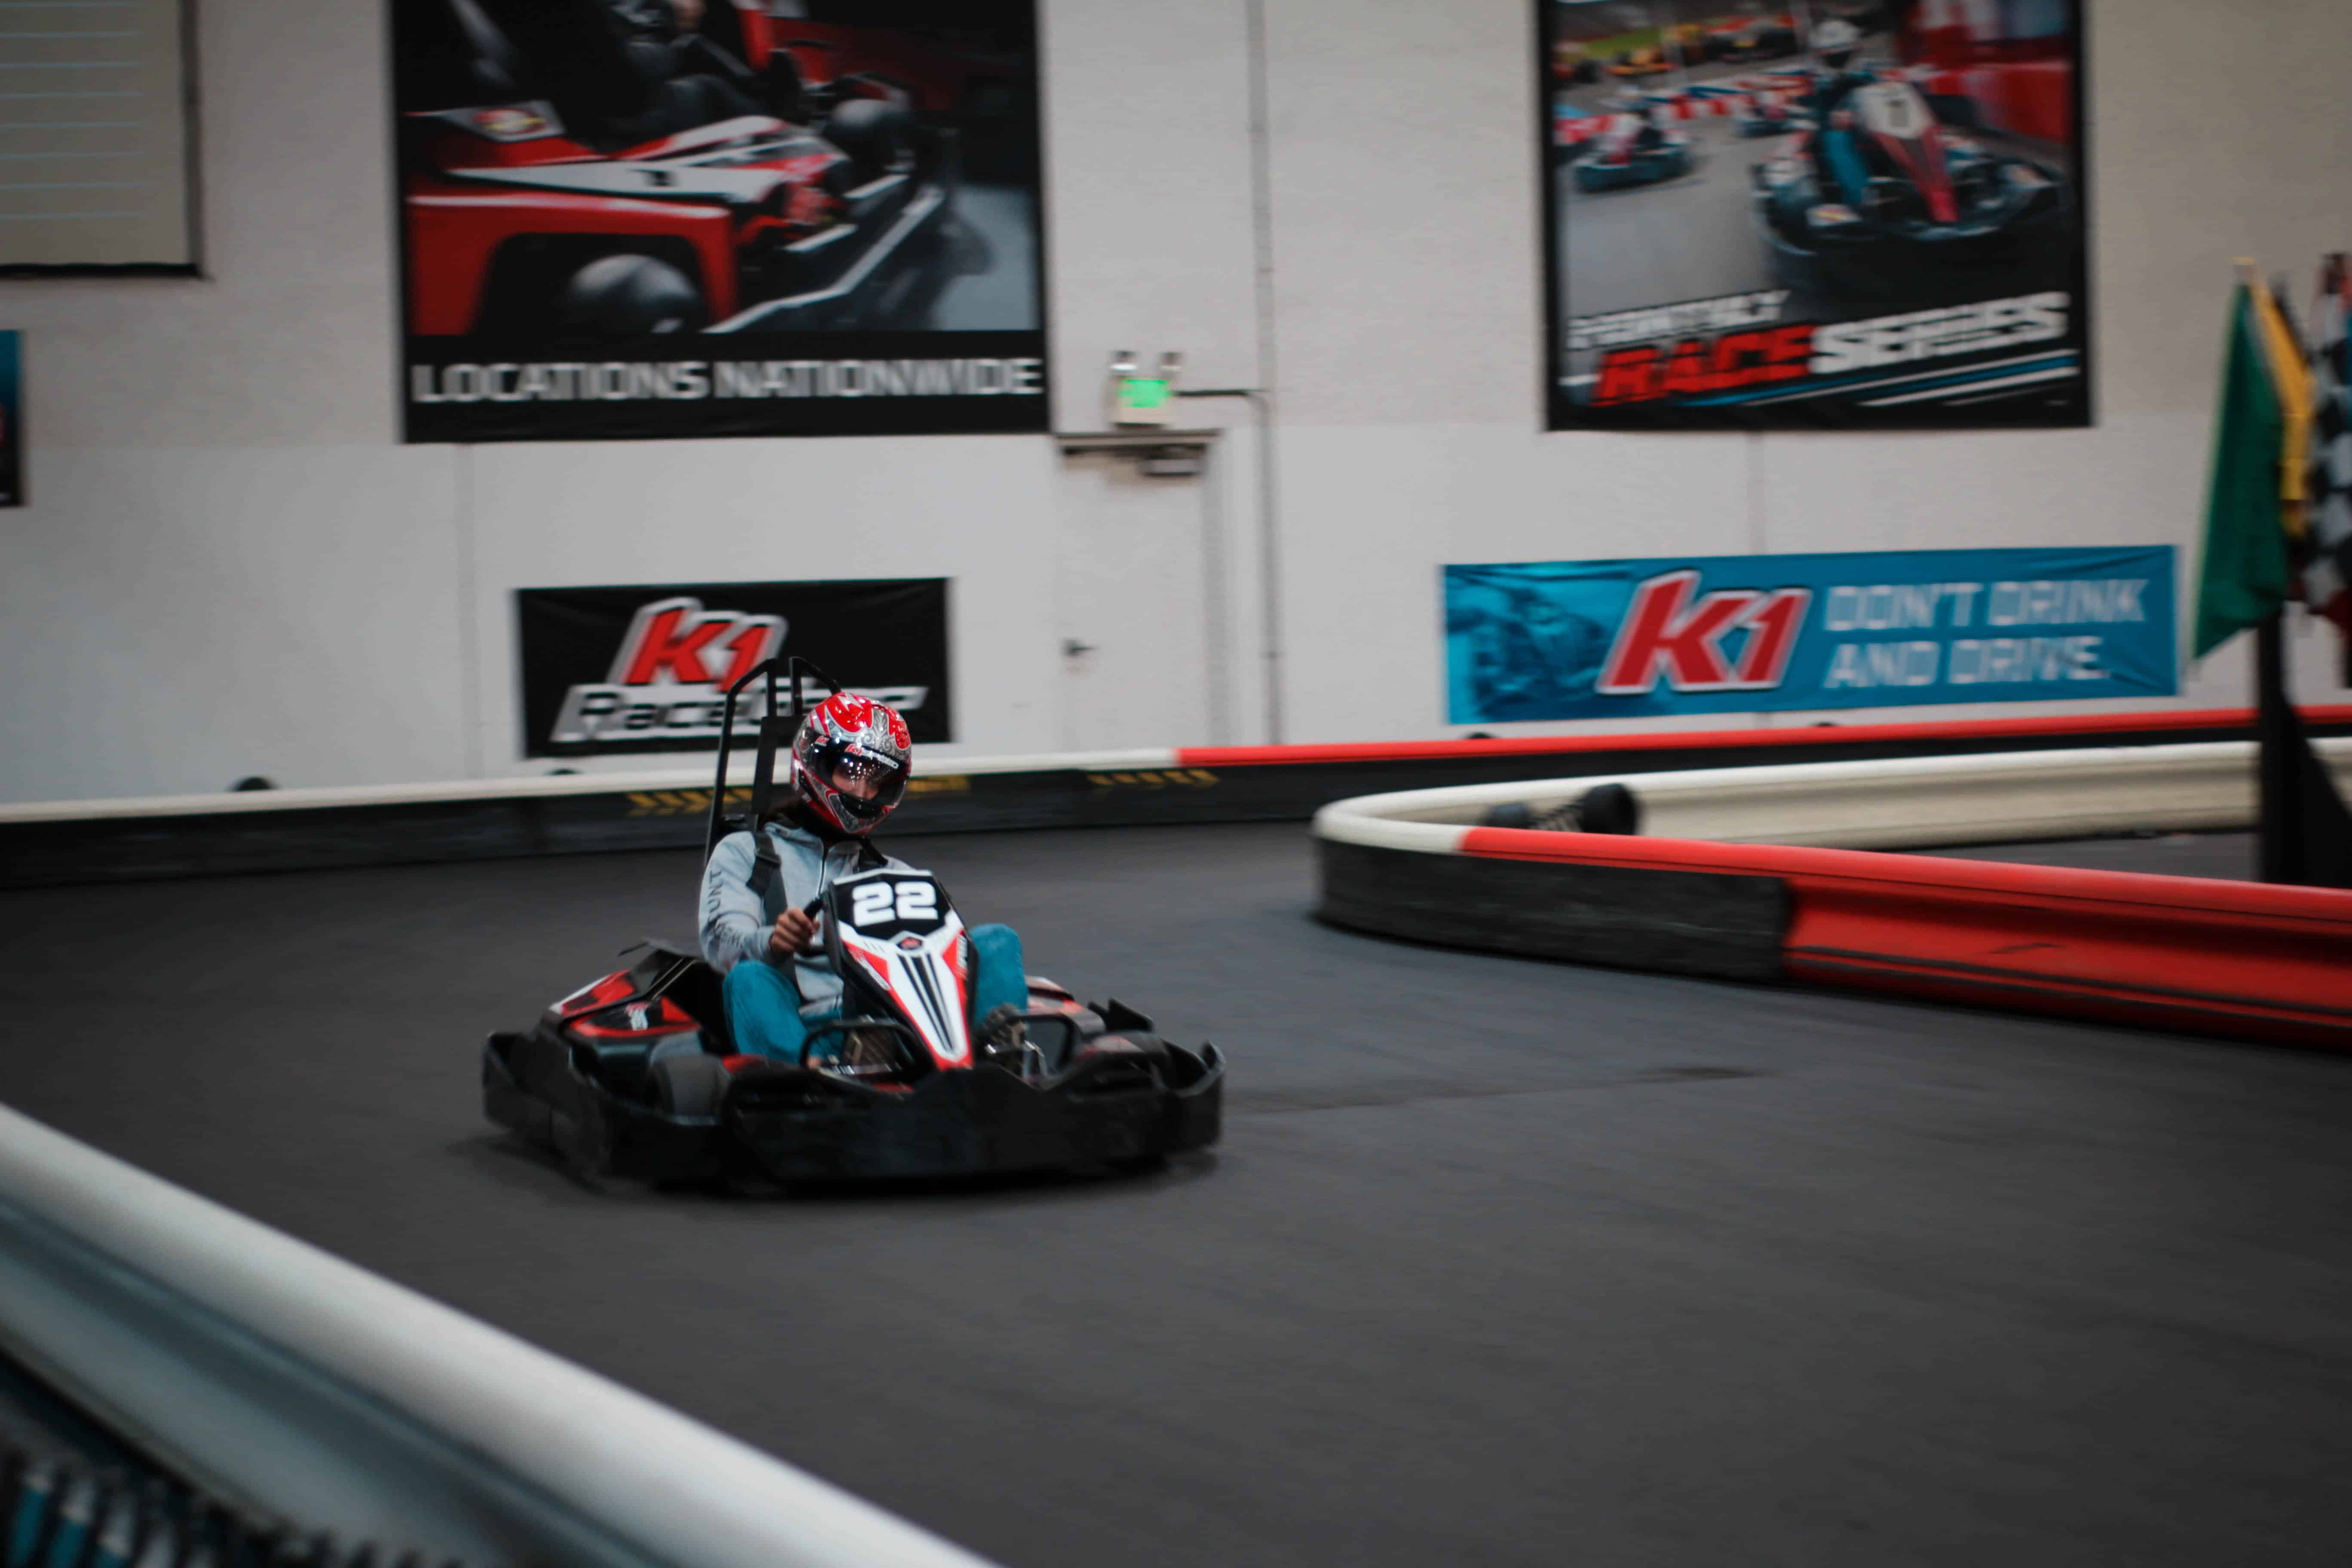 antonio arias races his kart during the k1 speed world championship